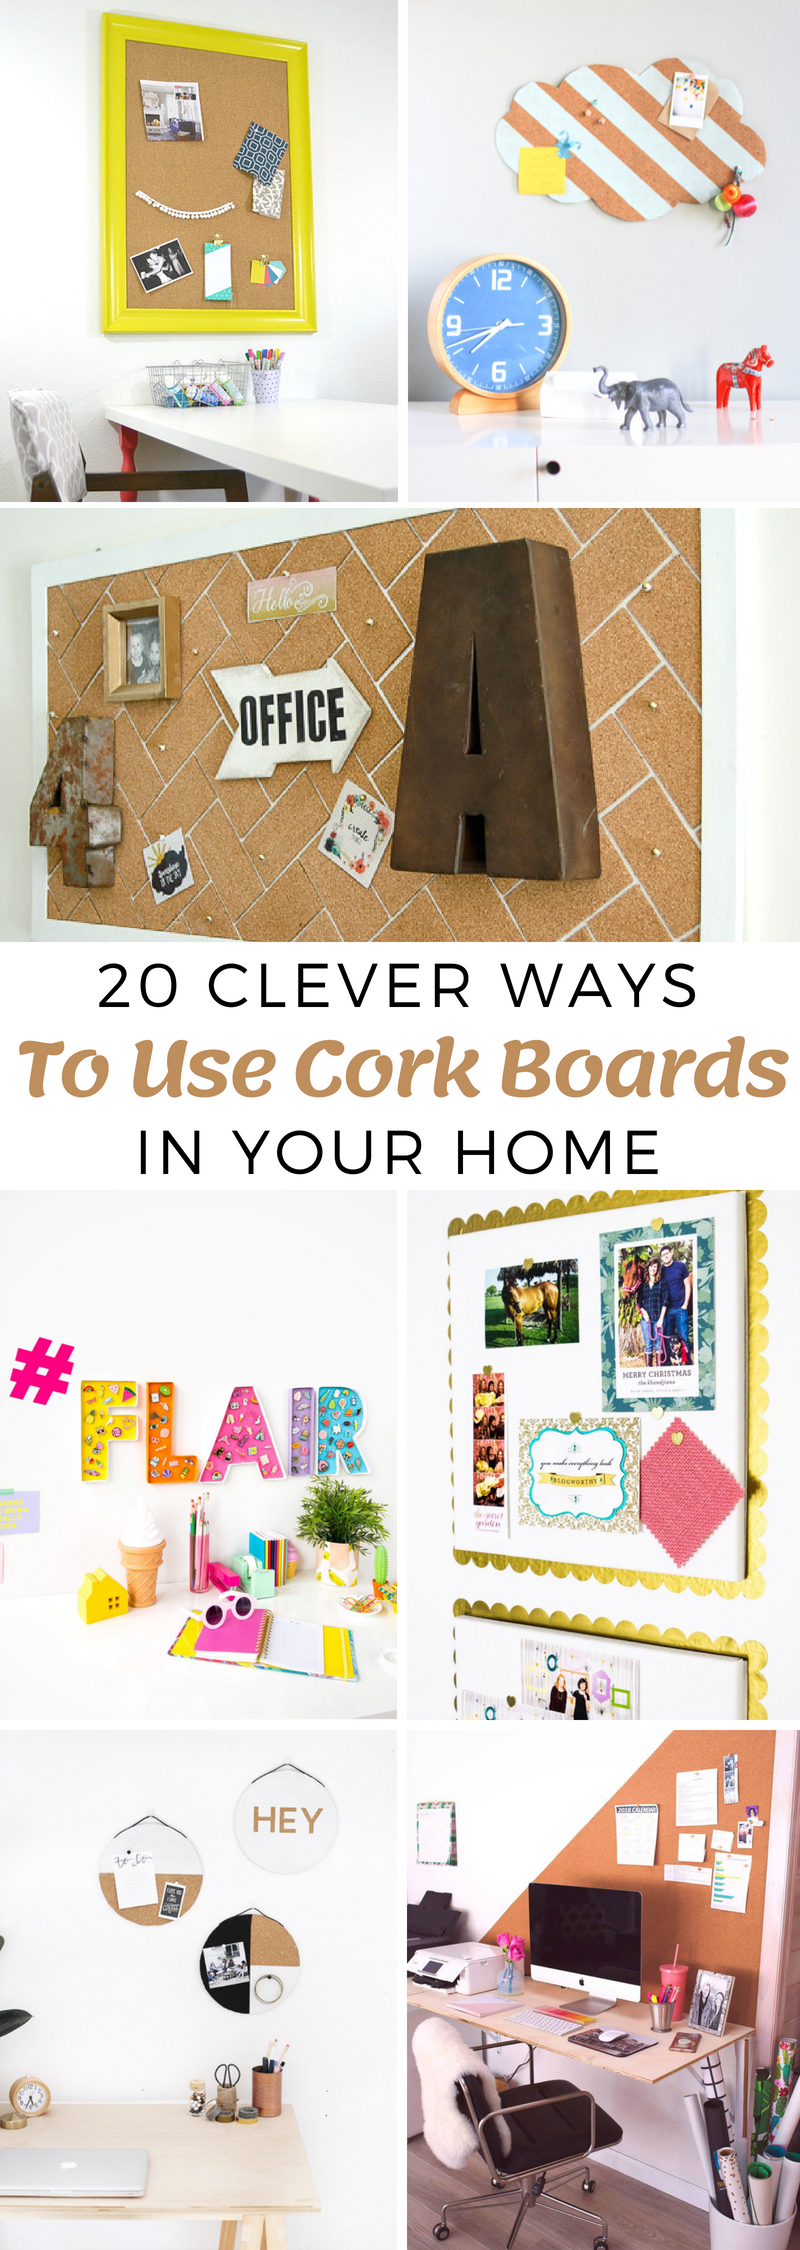 Ways To Use Cork Boards In Your Home